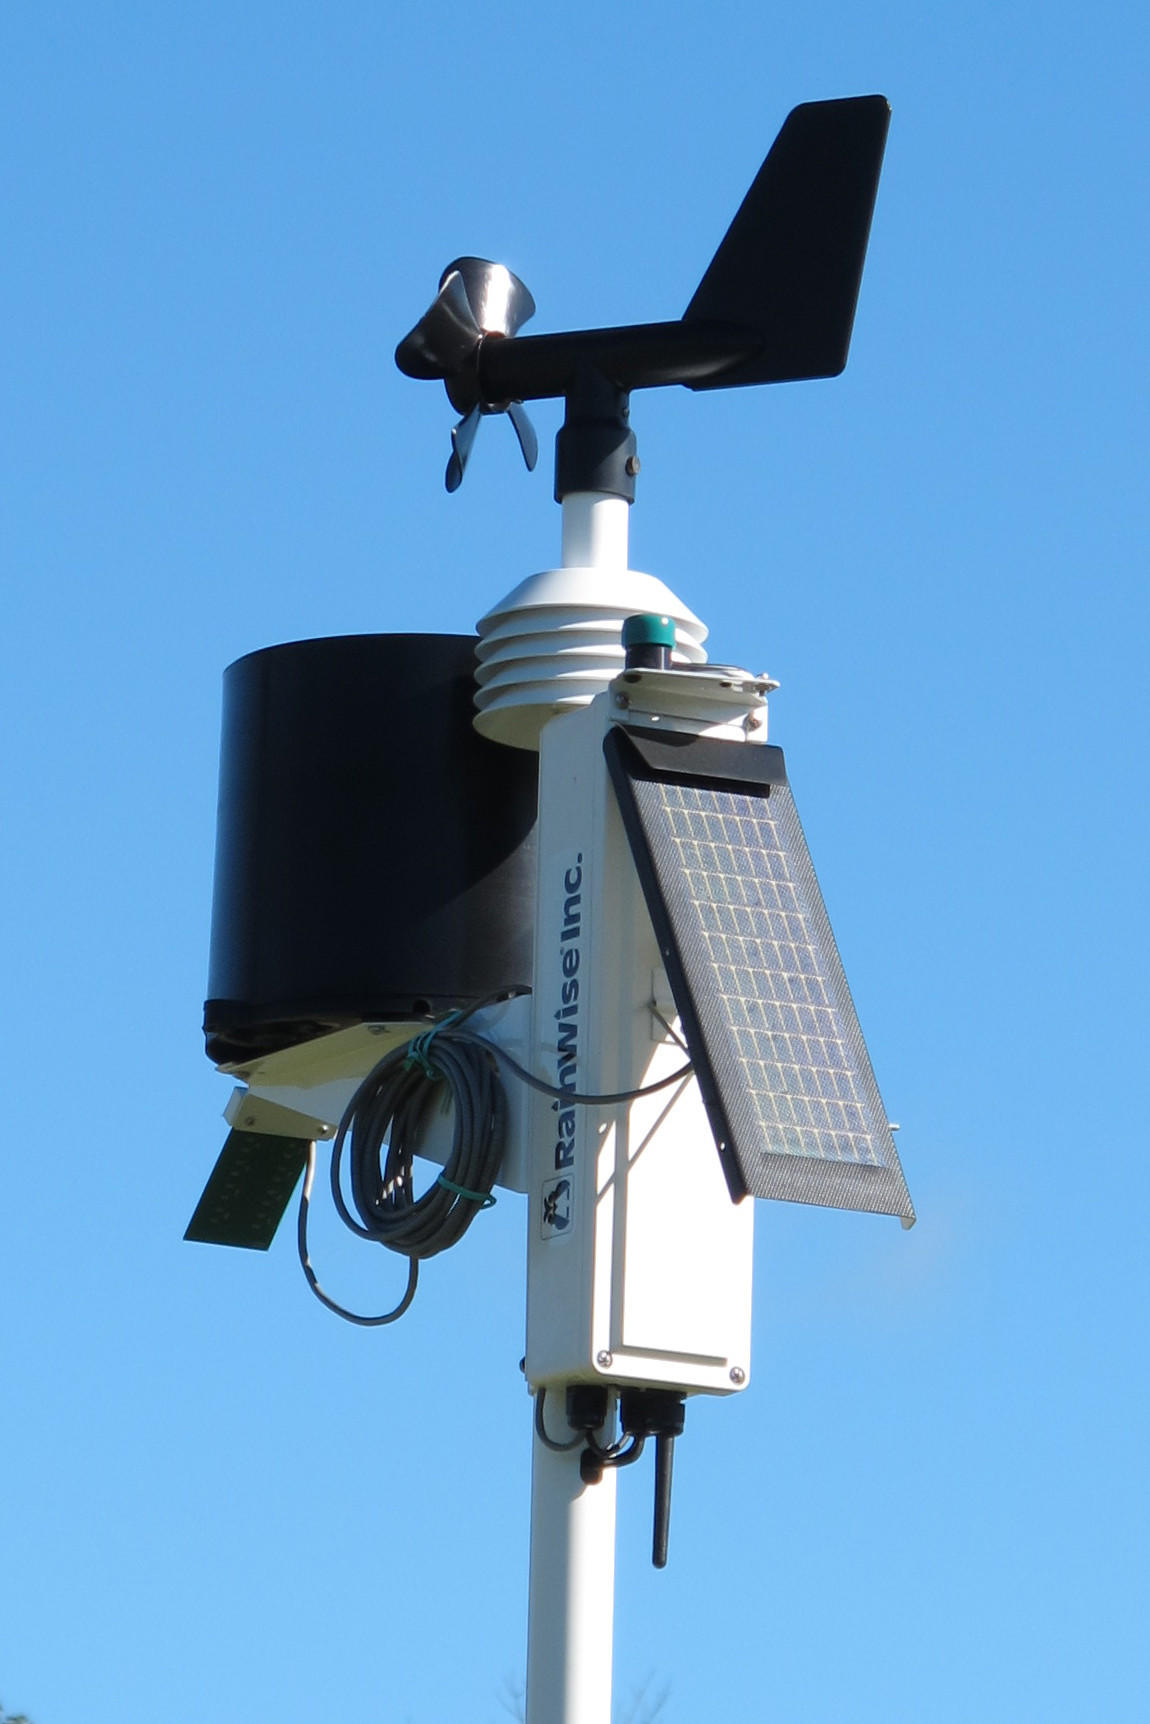 Small but sophisticated weather stations upload back-forty pest forecasts on your desktop to keep you apprised of ag or turf pests headed your way.